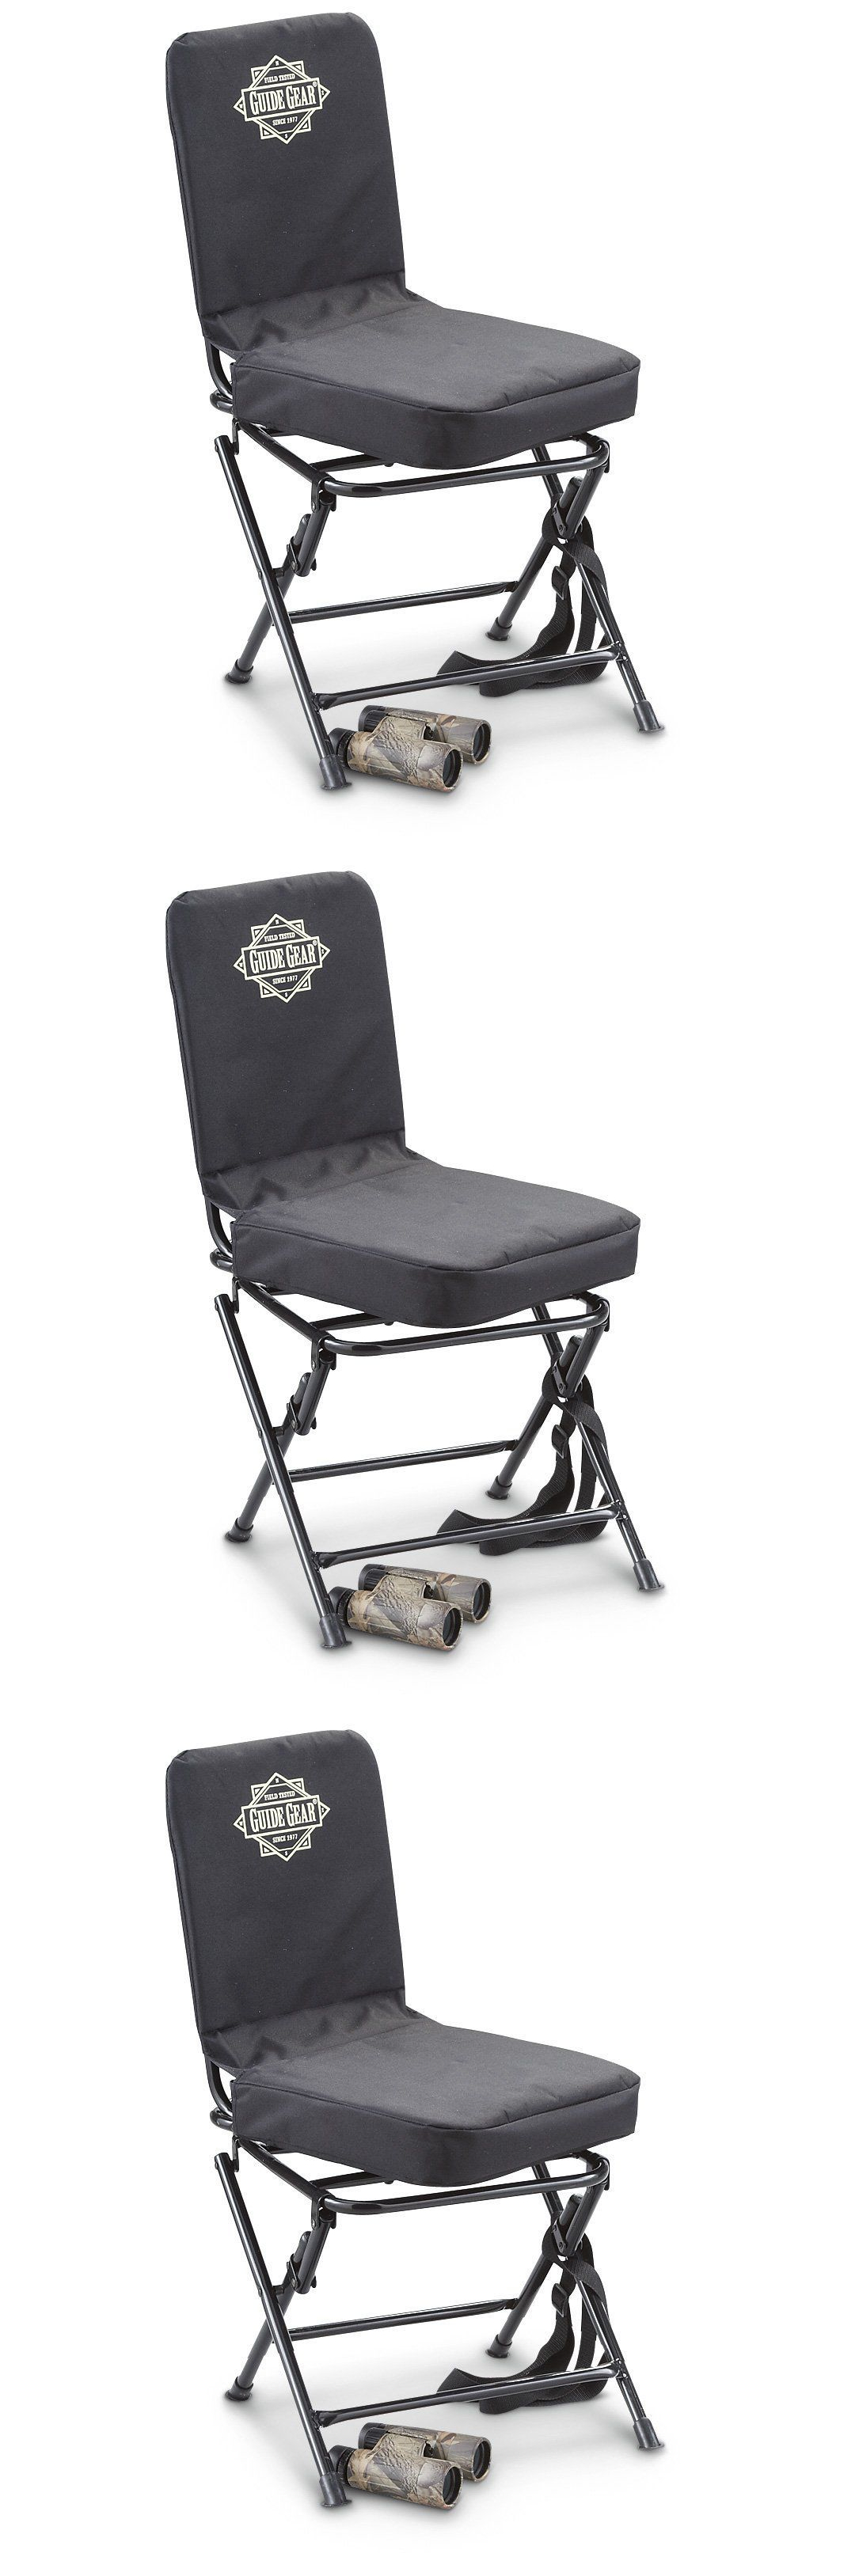 Seats and Chairs Portable Hunting Chair Folding Deer Stool